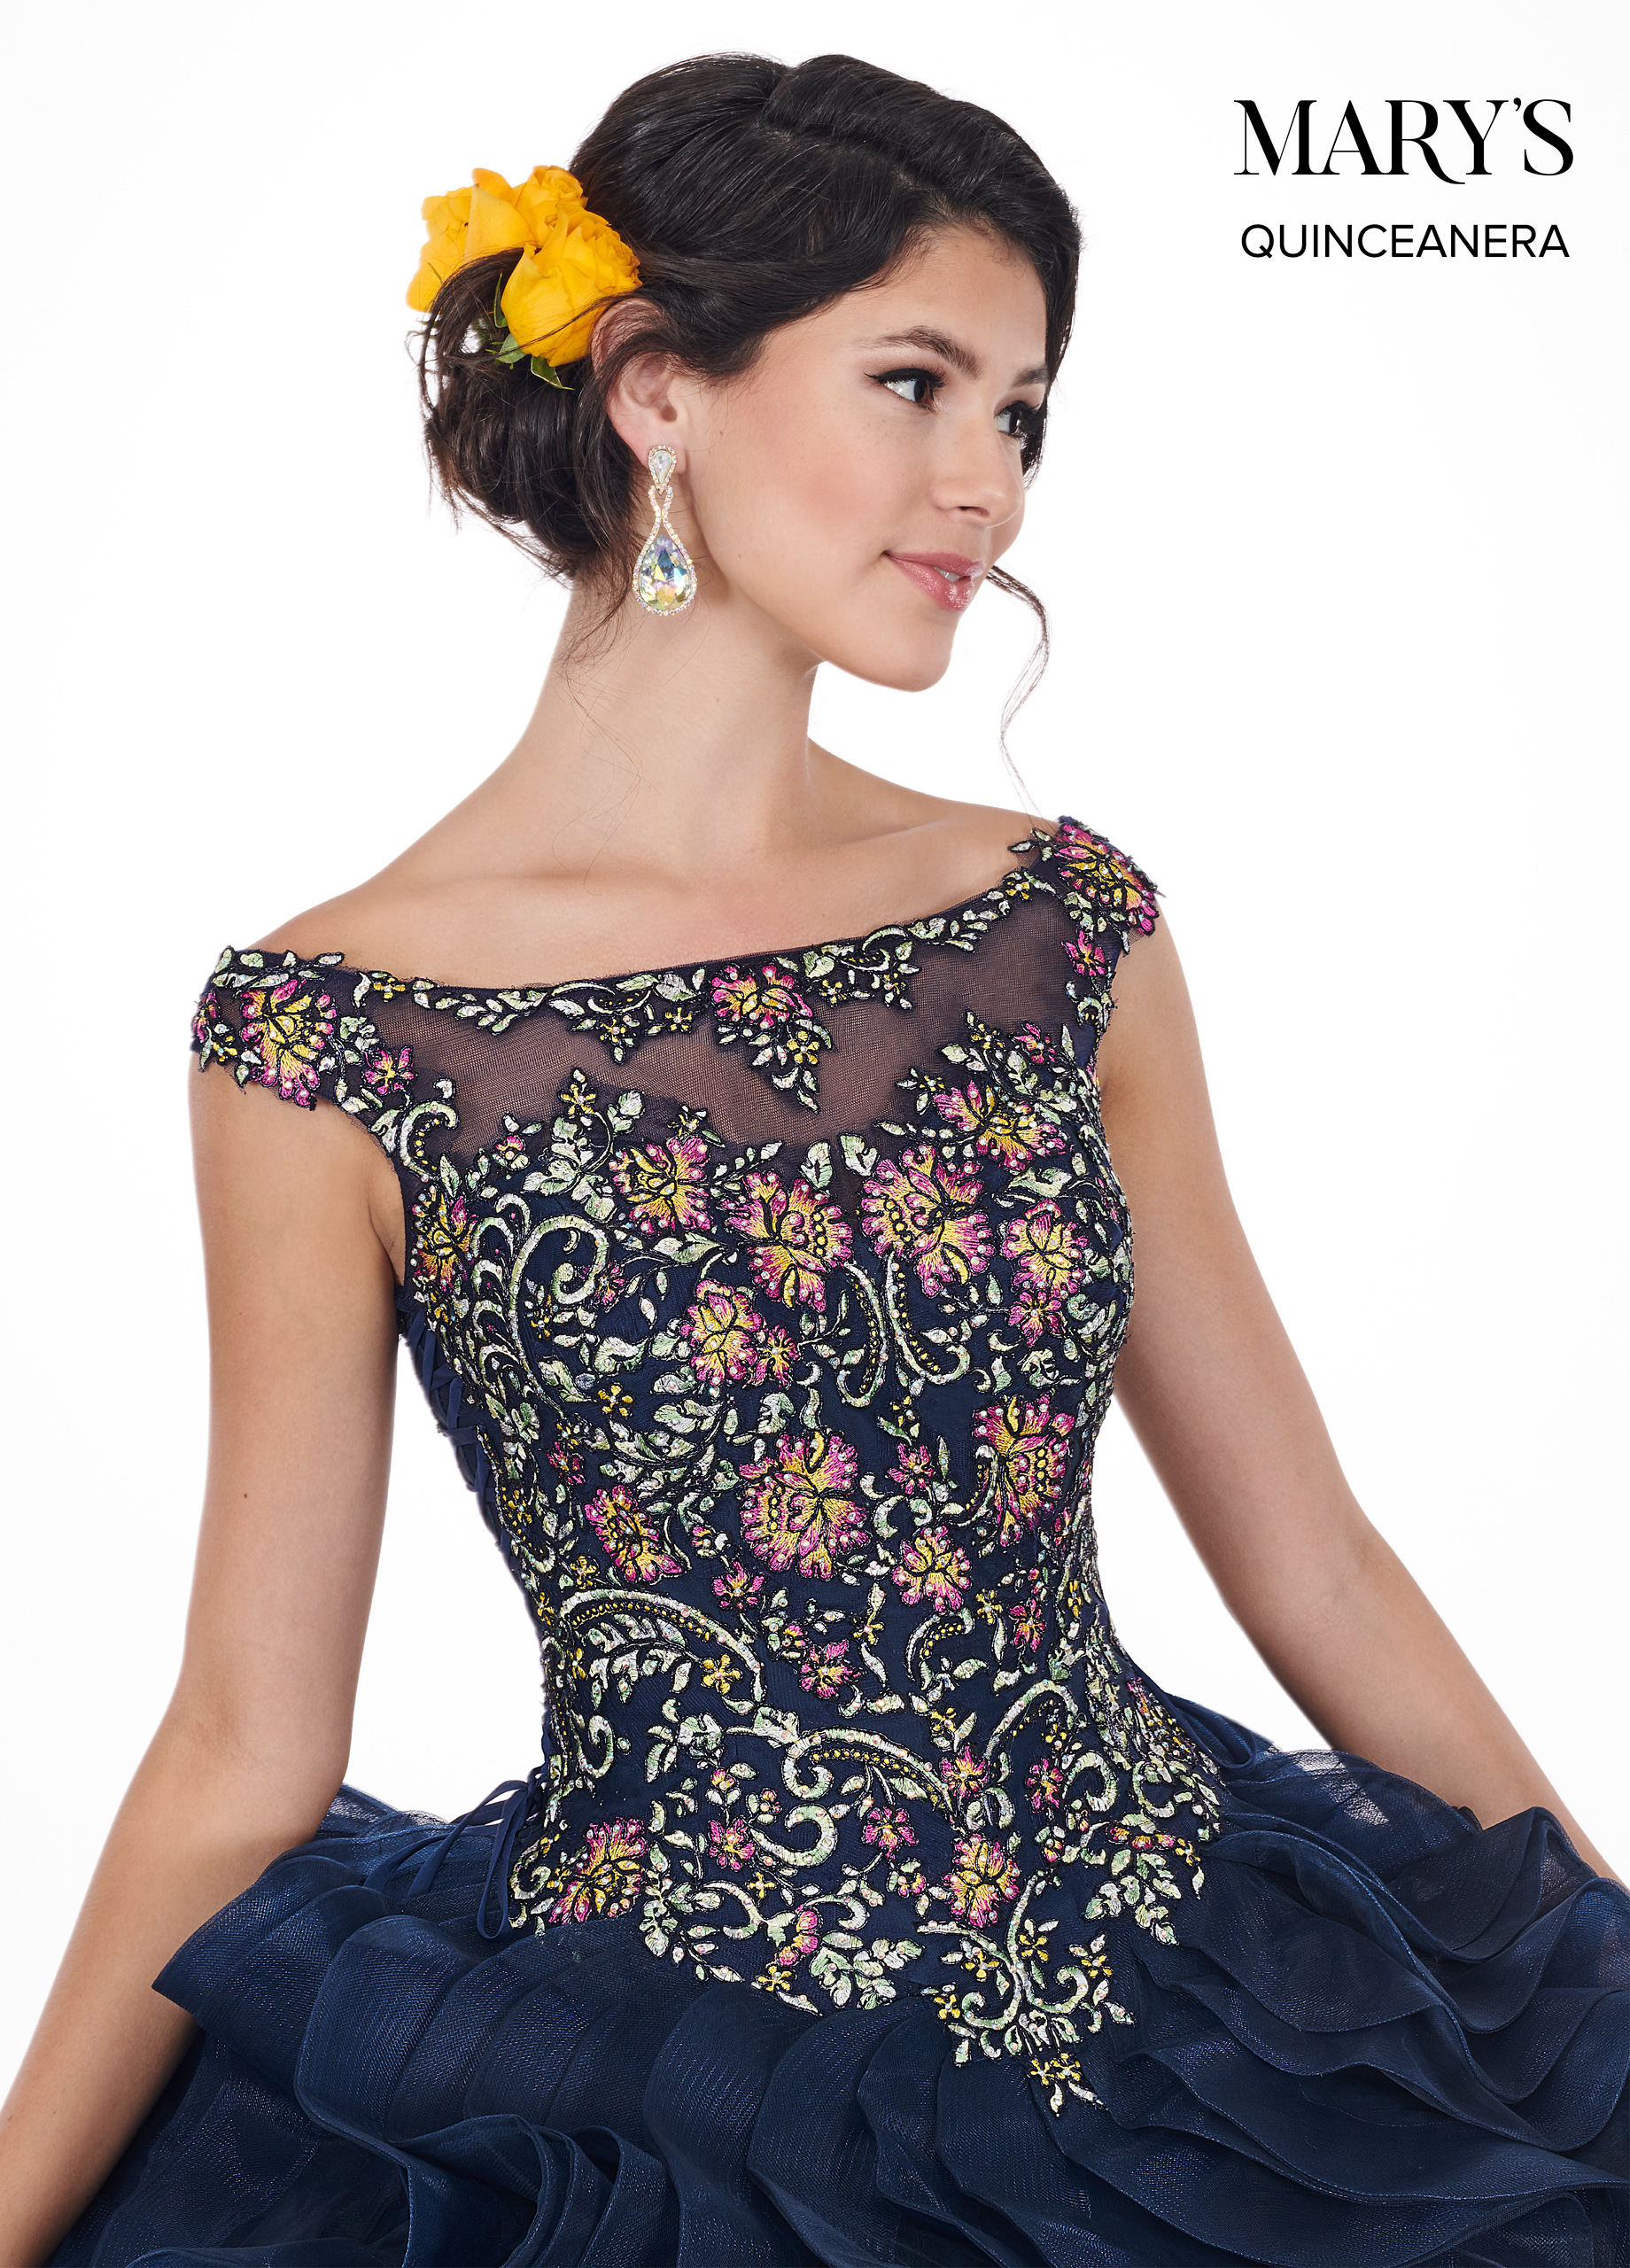 Marys Quinceanera Dresses | Mary's Quinceanera | Style - MQ1037